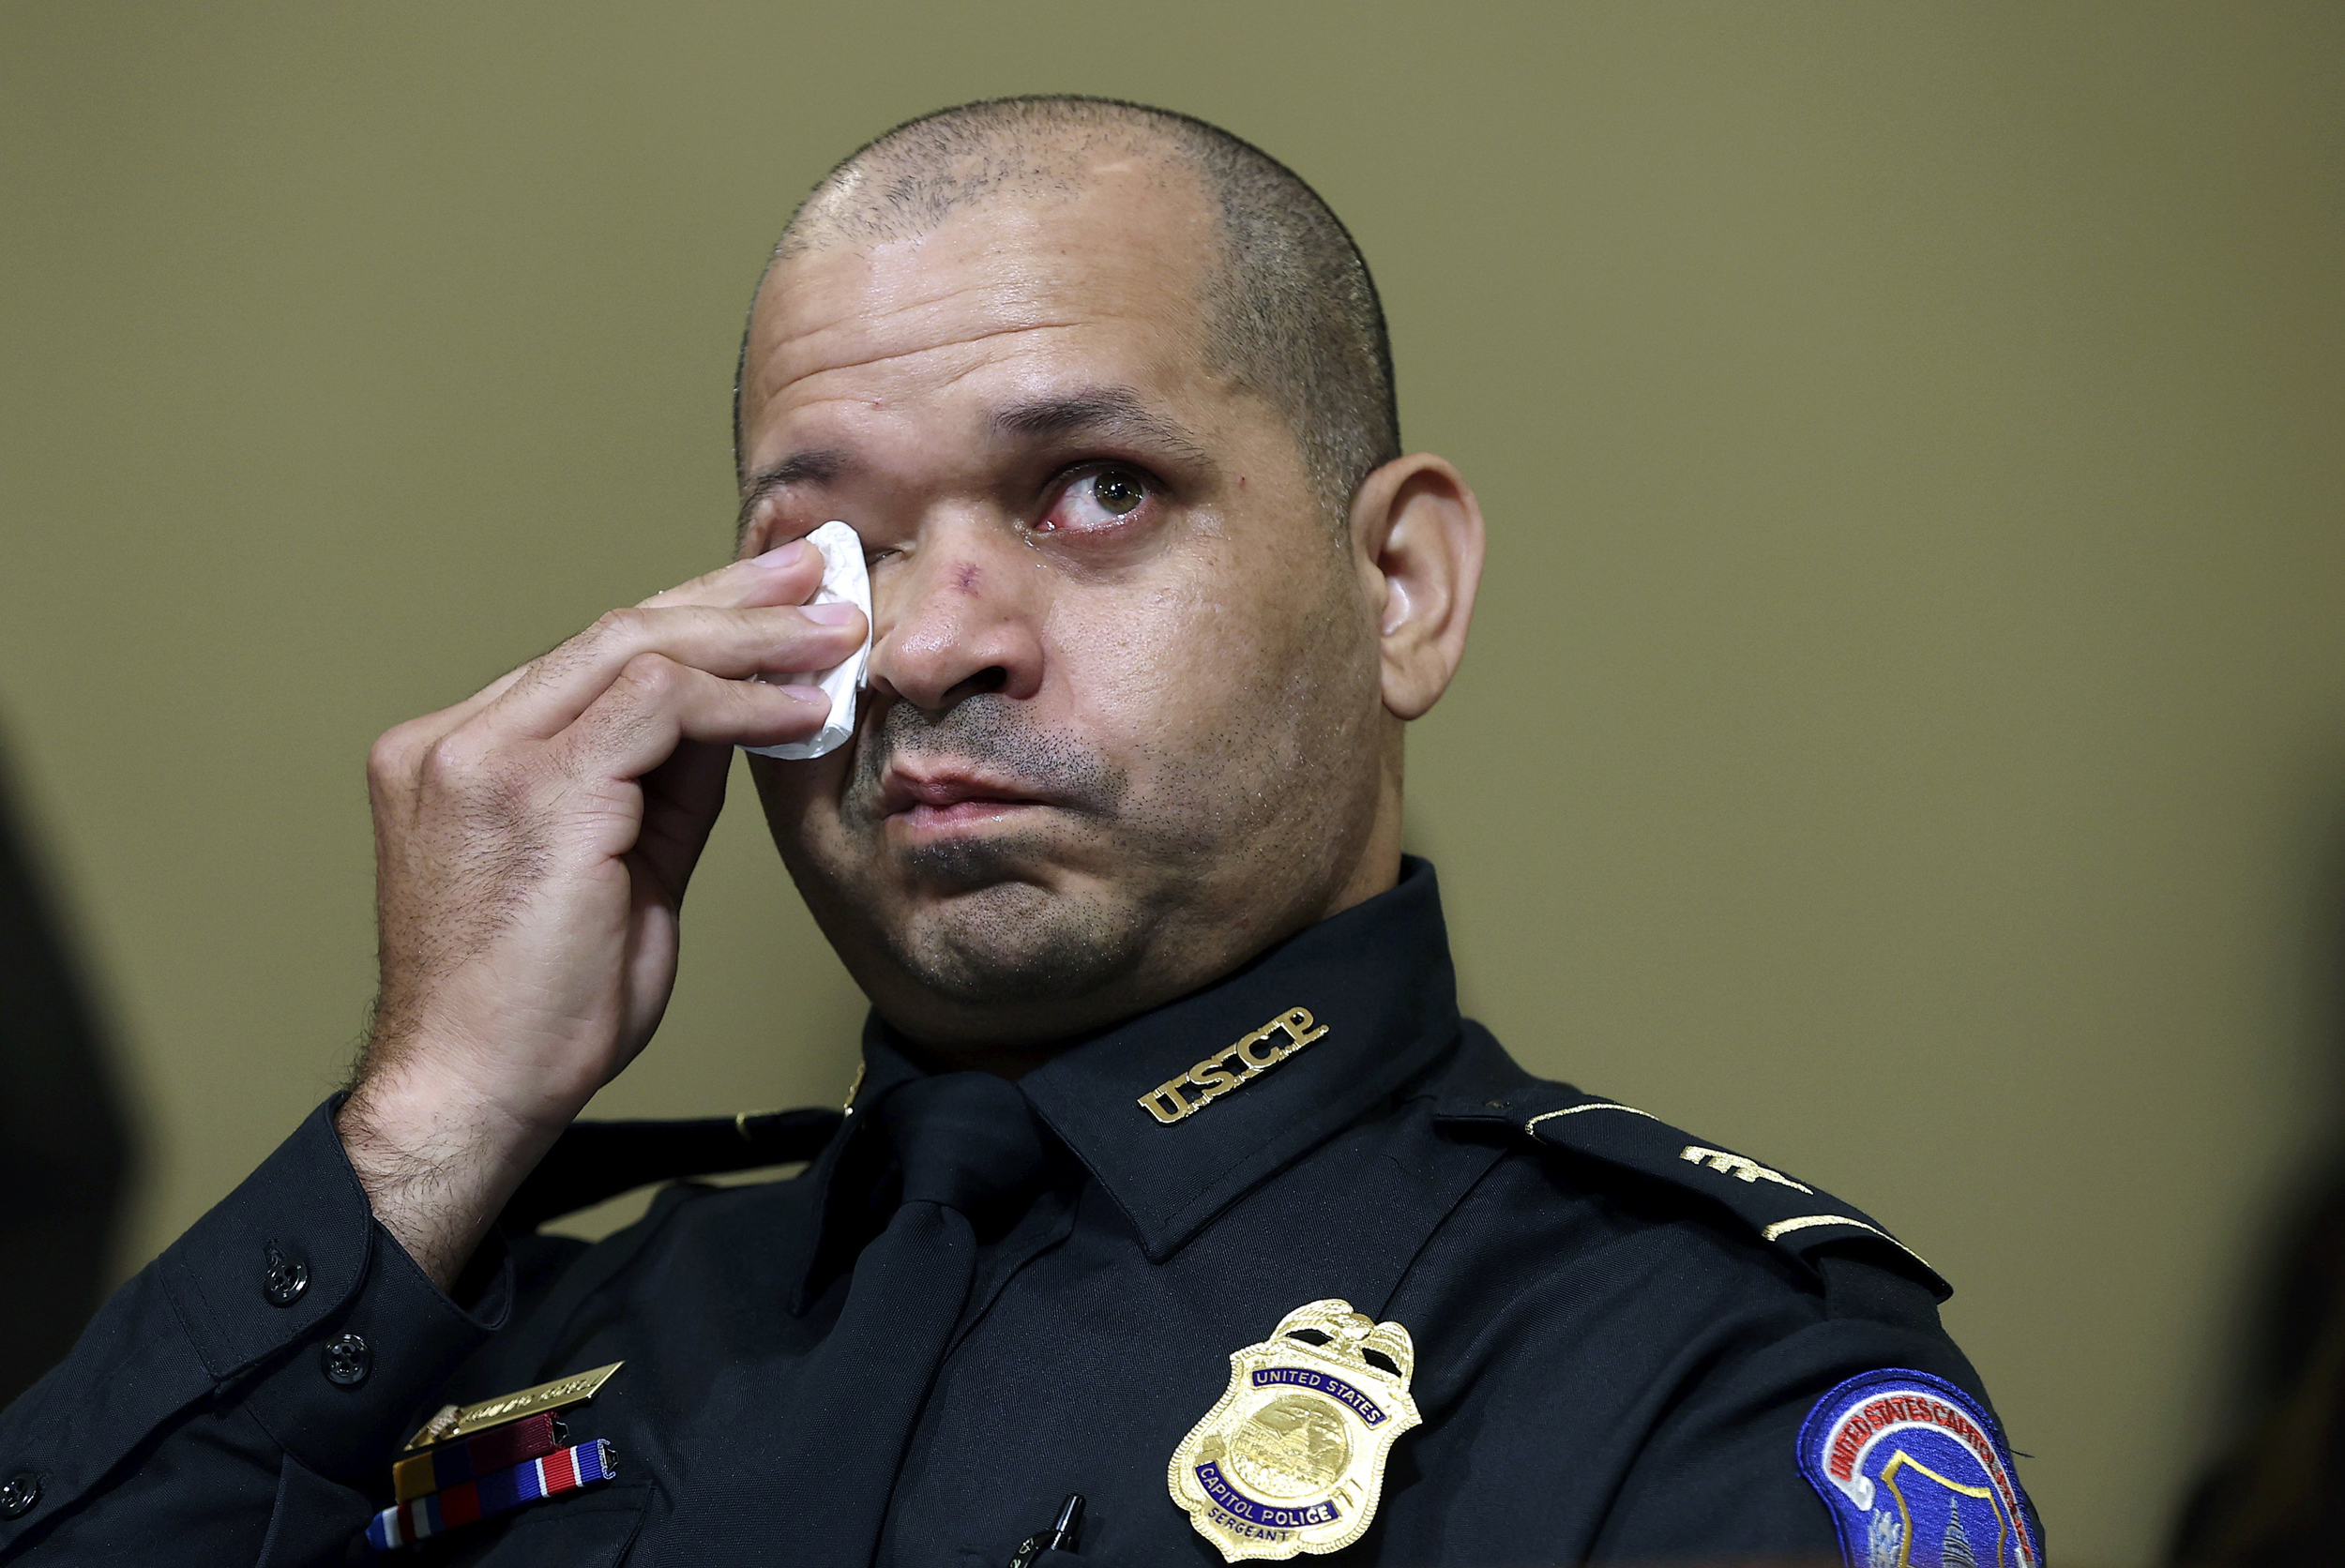 'Kill him with his own gun': Officers recount trauma of Capitol riot in emotional testimony